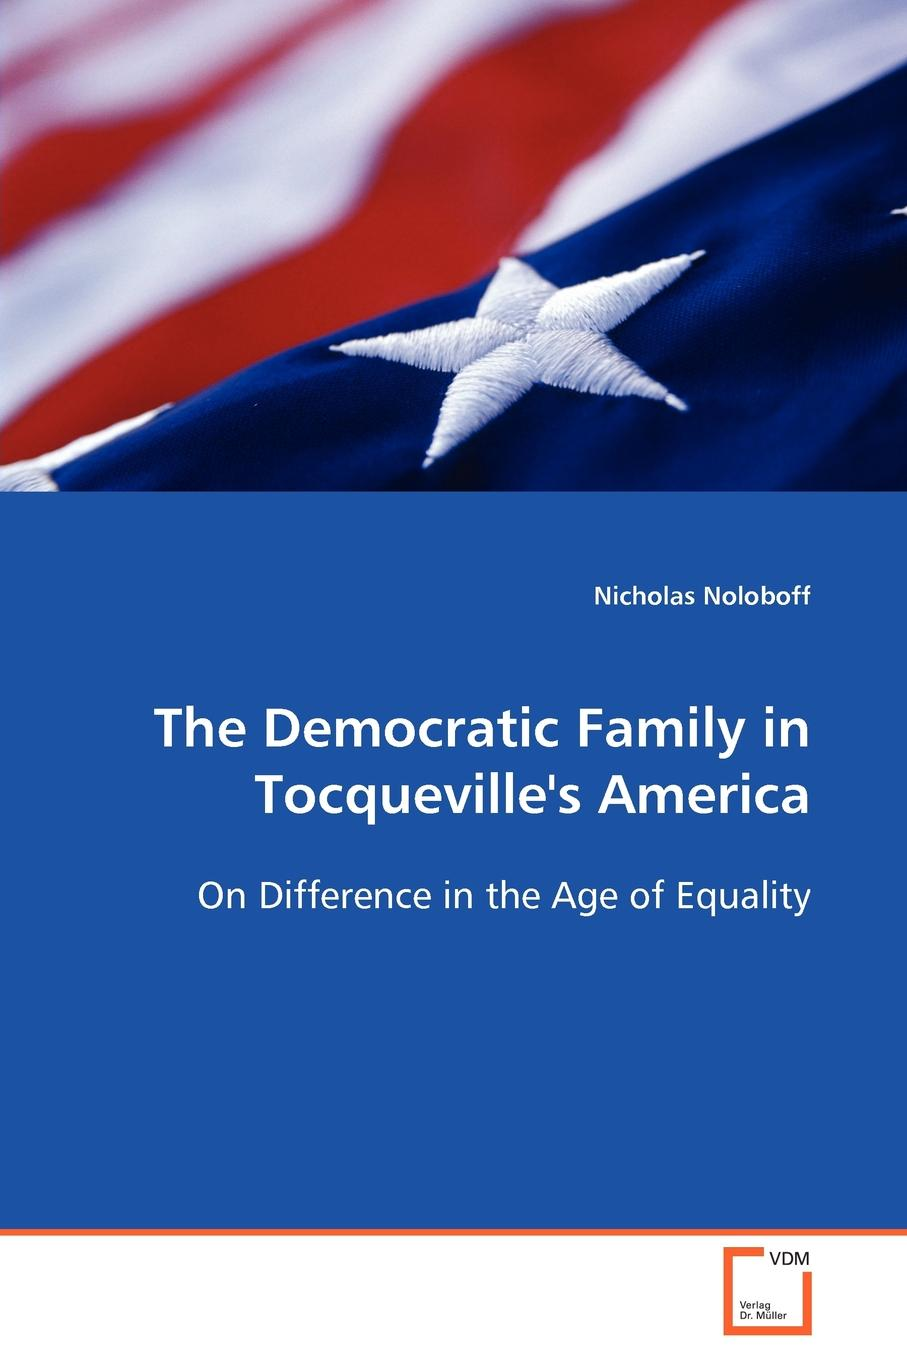 лучшая цена Nicholas Noloboff The Democratic Family in Tocqueville.s America On Difference in the Age of Equality